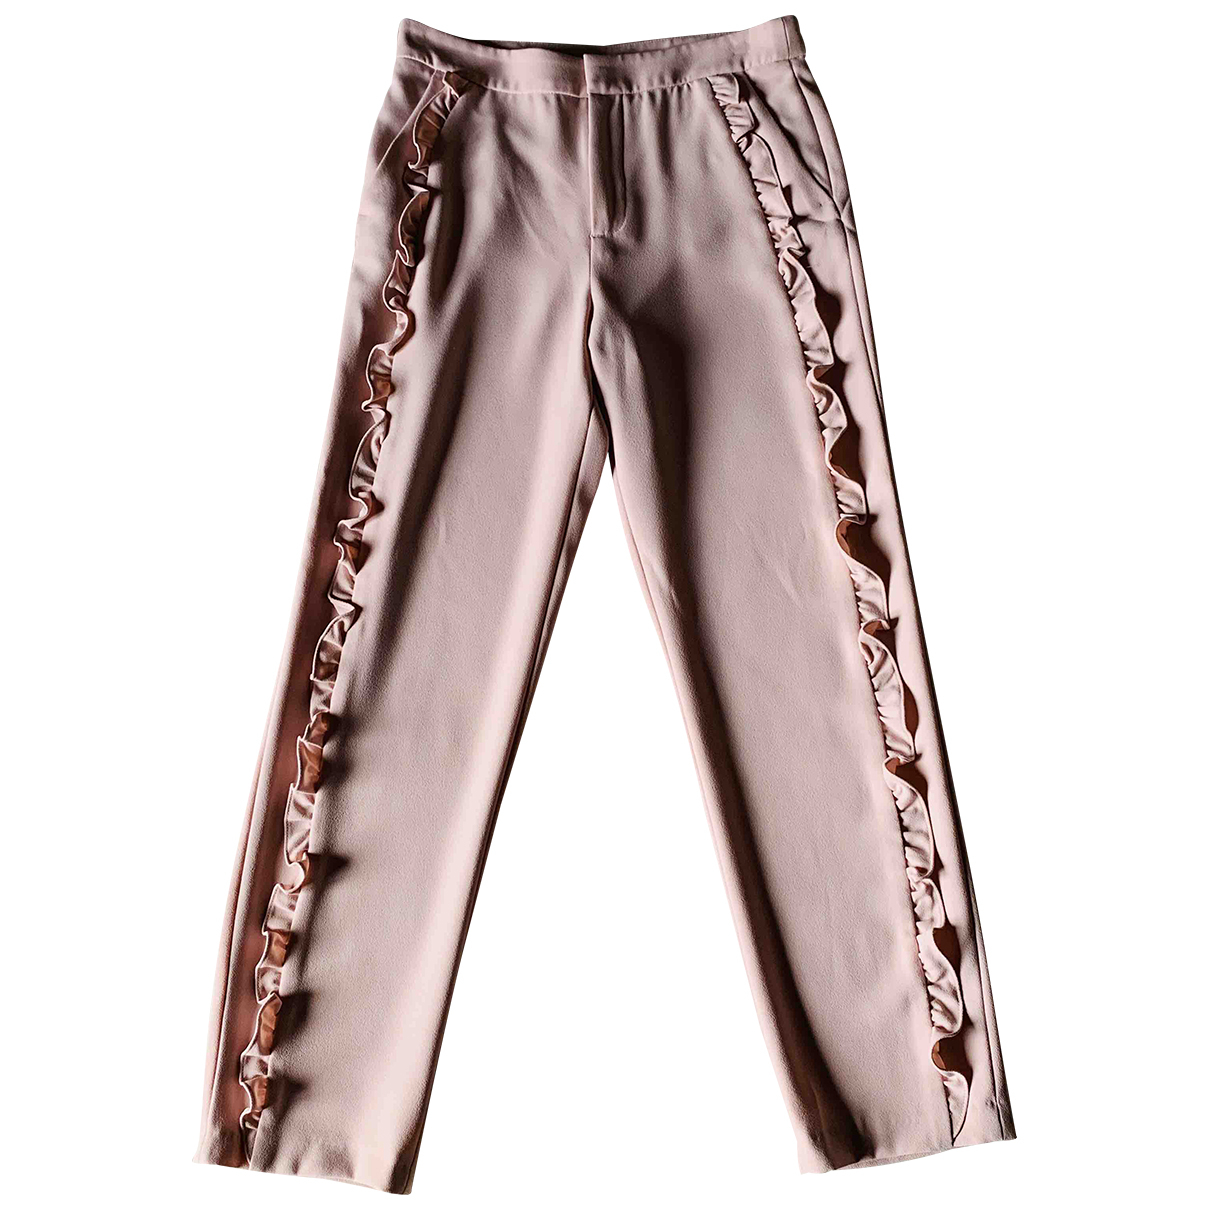 Zara \N Pink Trousers for Women XS International